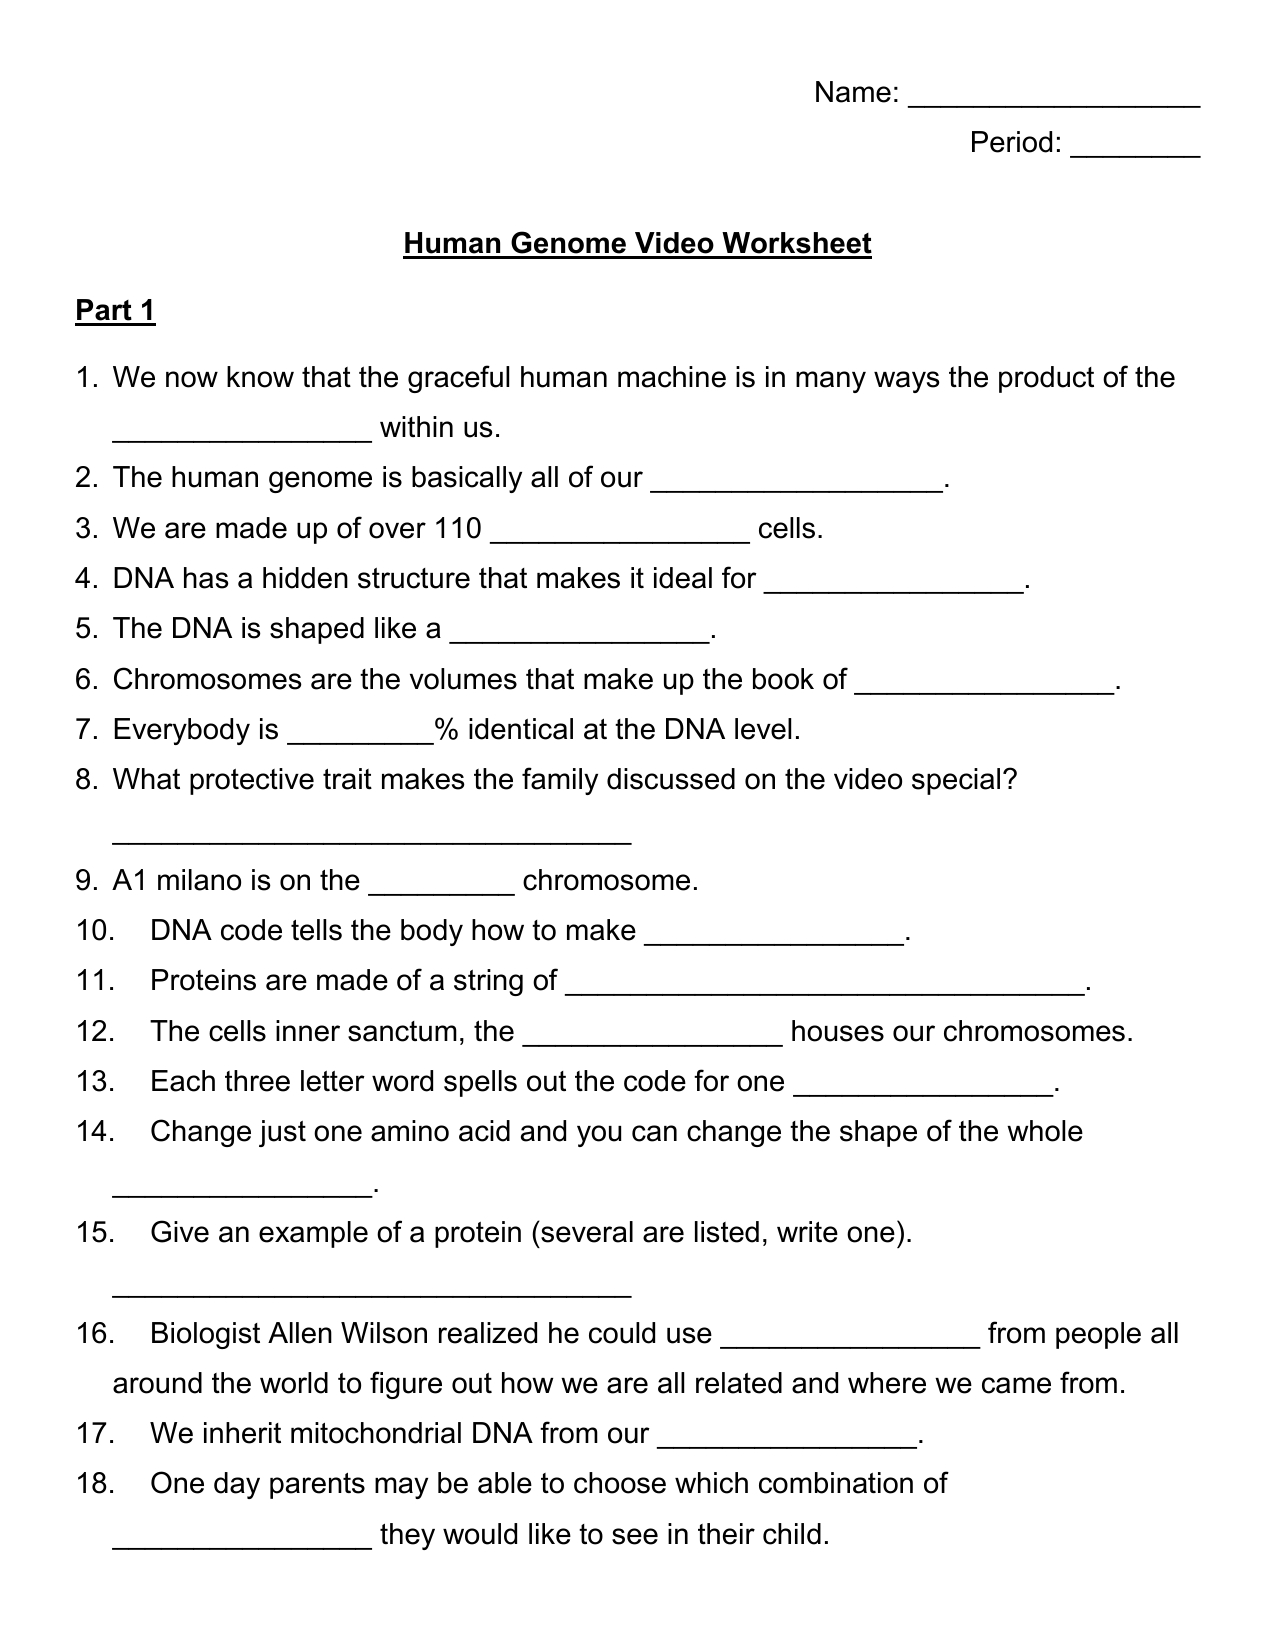 Human Genome Video Guide And Human Genome Video Worksheet Answers